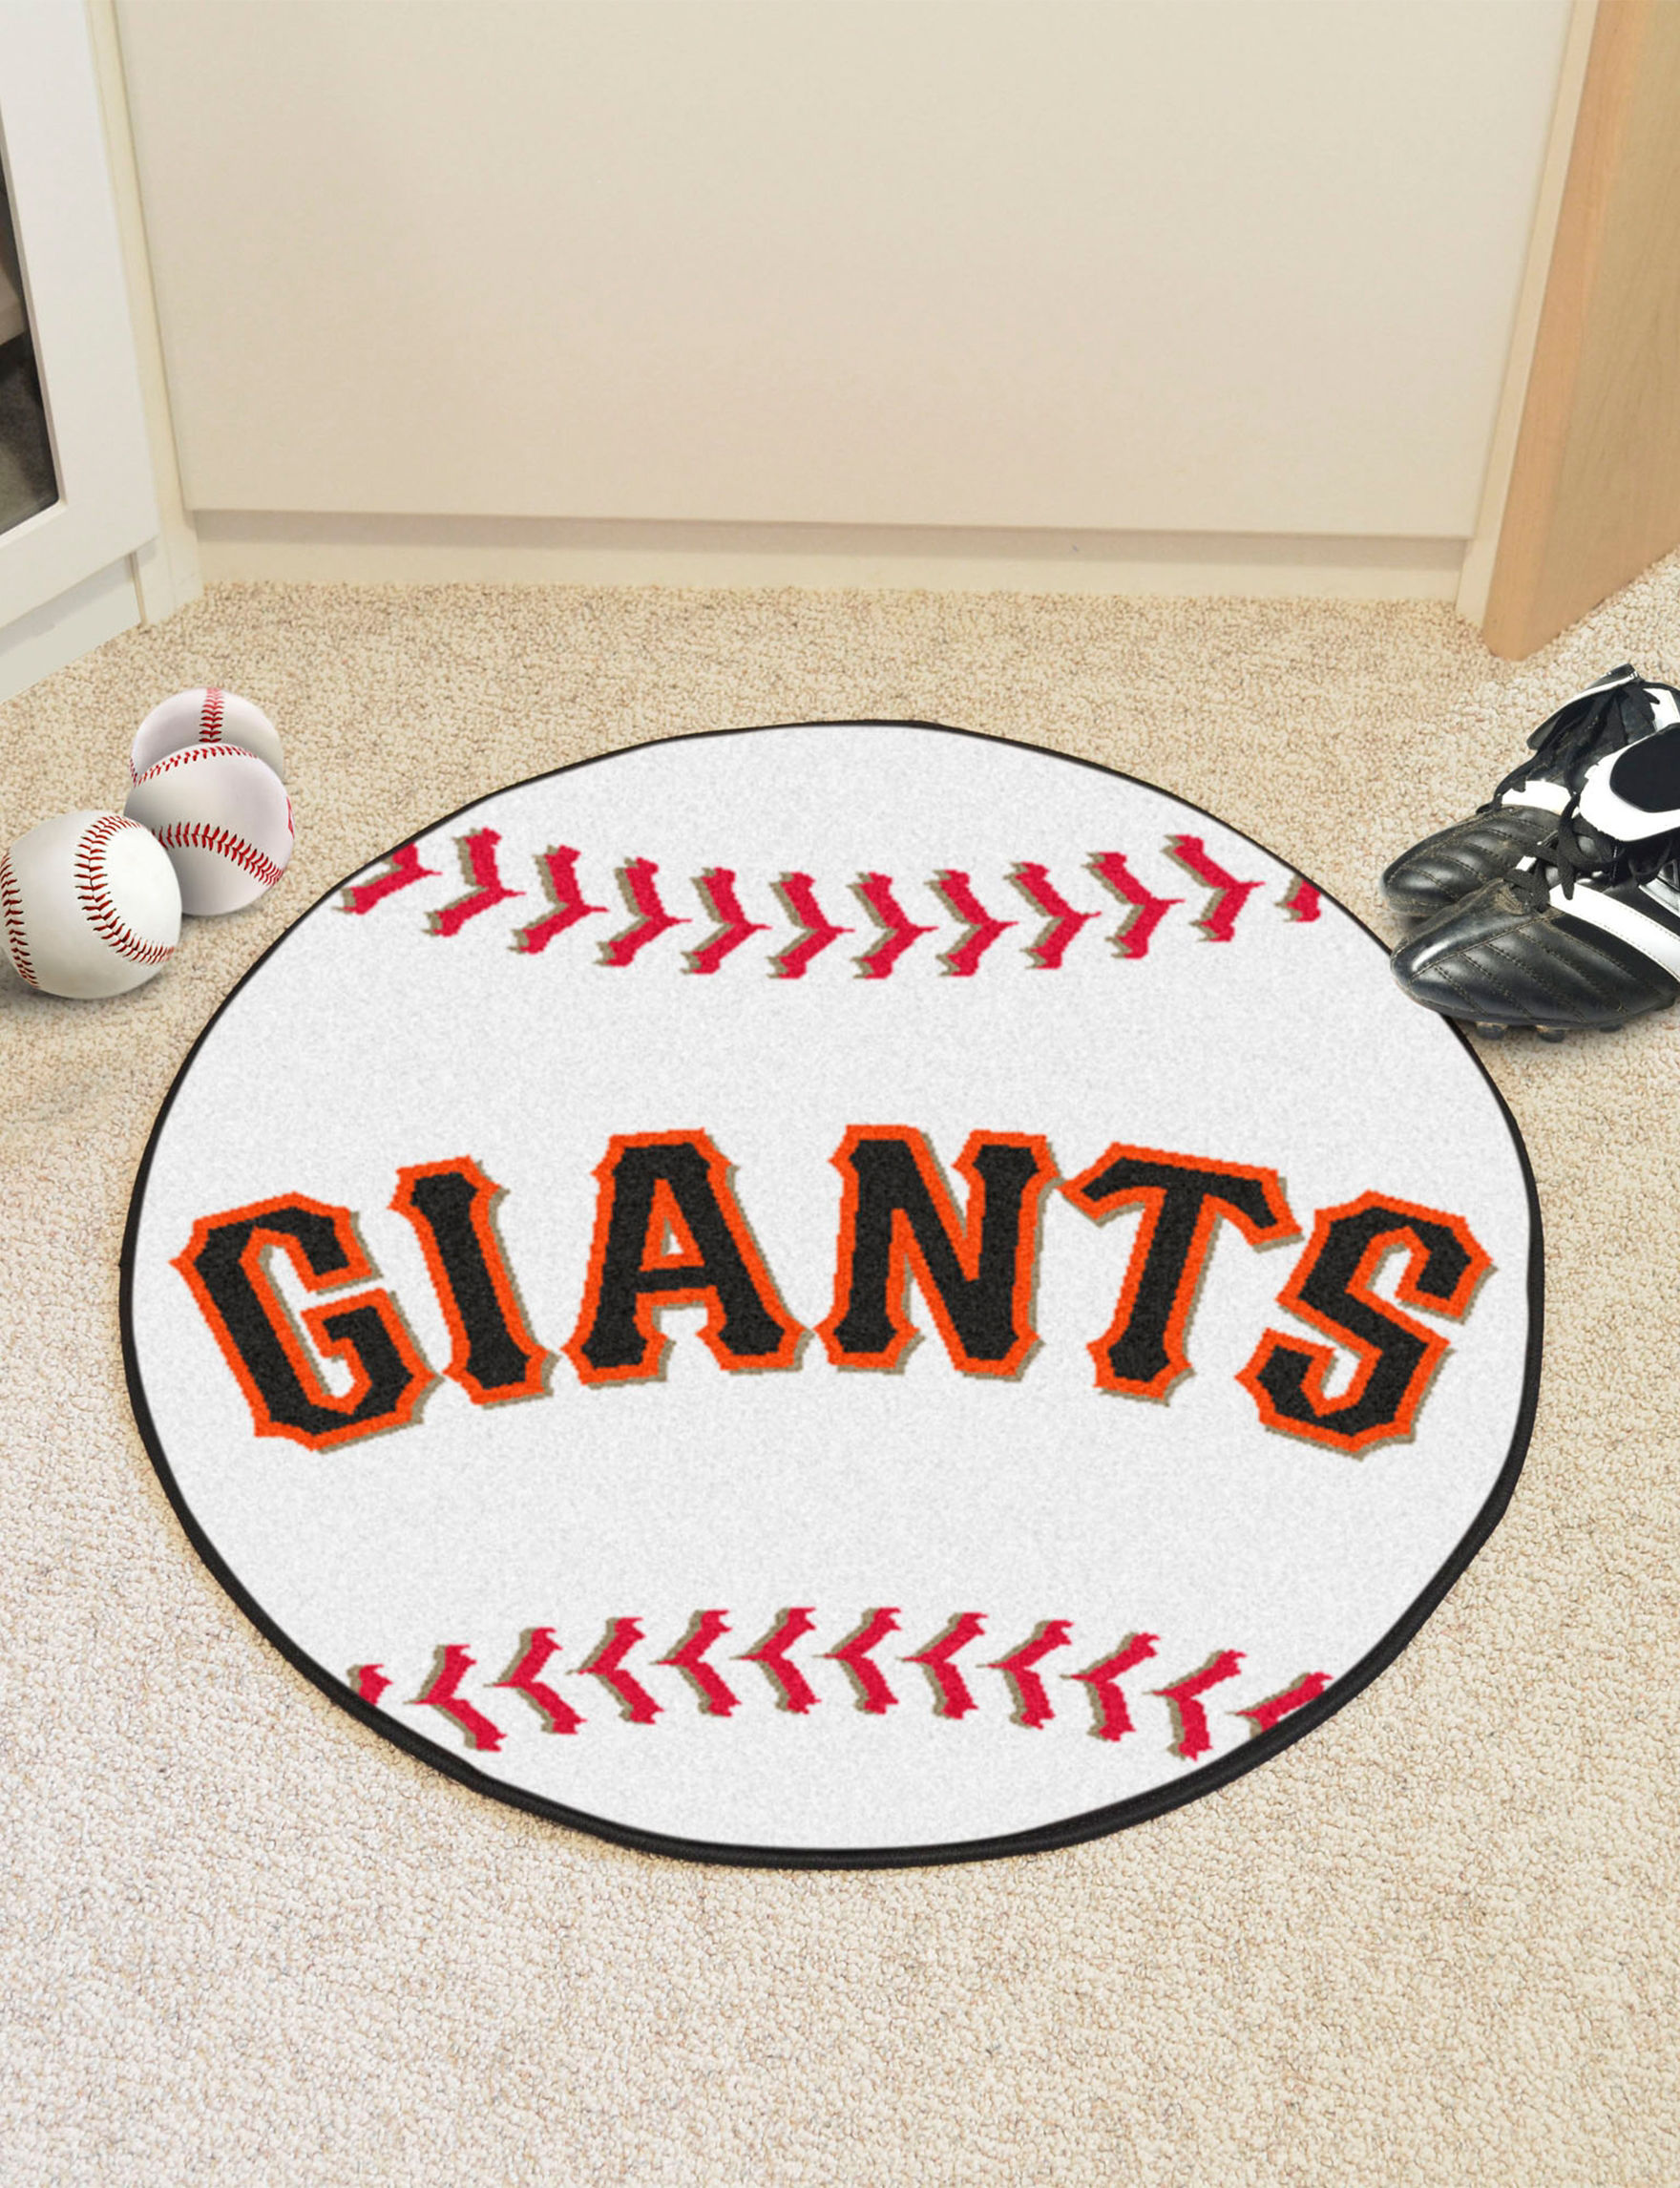 Fanmats Orange Accent Rugs Area Rugs Outdoor Rugs & Doormats MLB Rugs